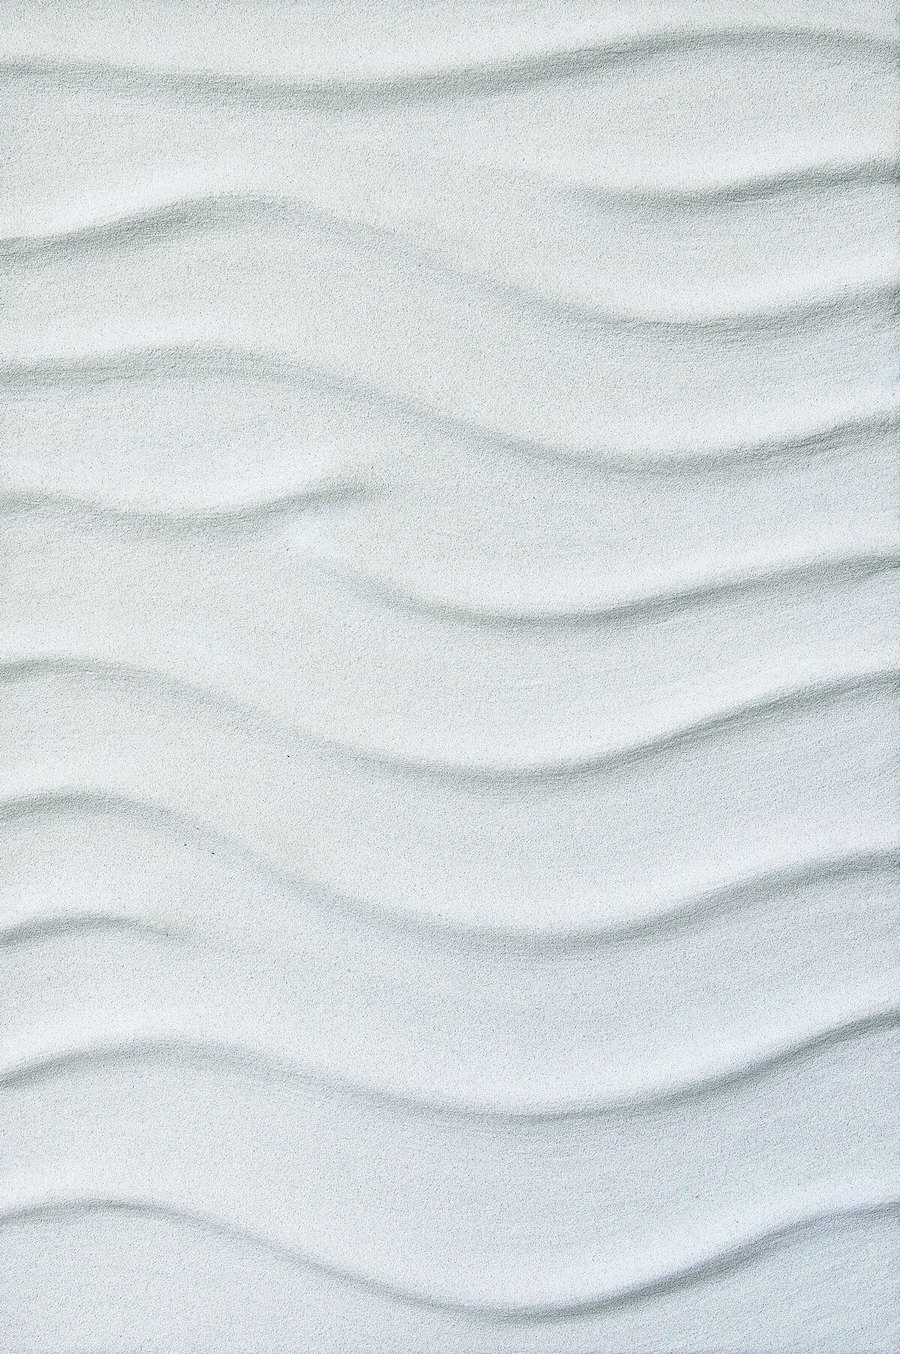 Plaster-and-sand-on-wood-panel very light grey/white in colour with smooth 3d waved lines across the panel